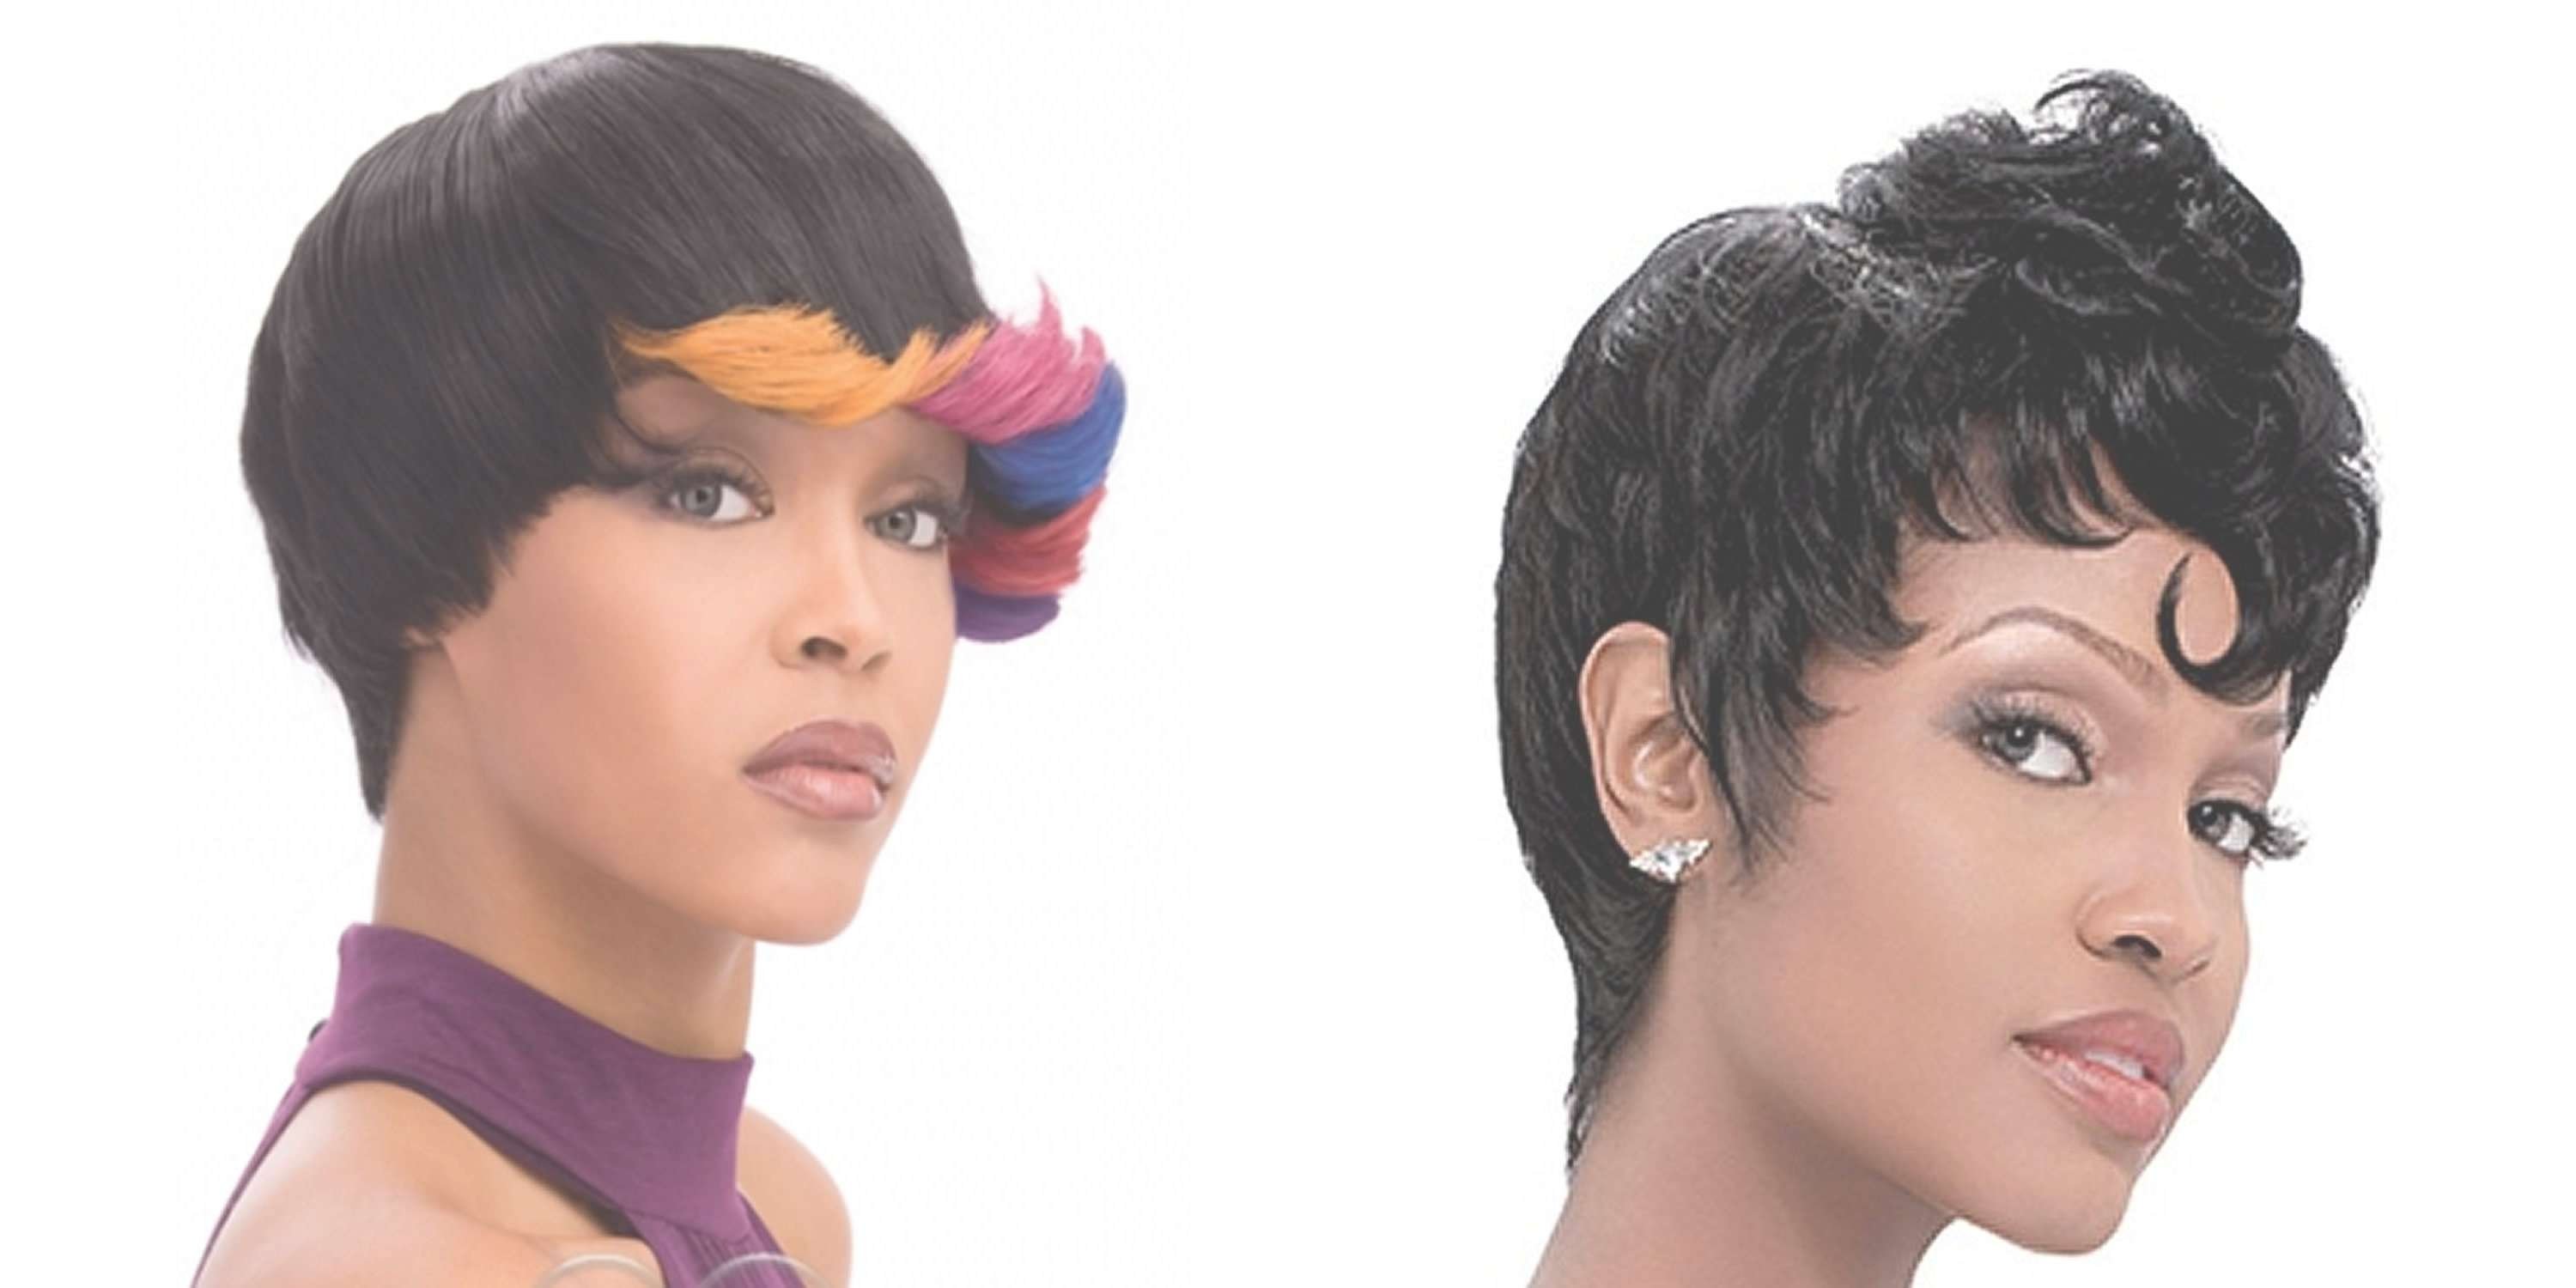 Pixie Hairstyles For Black Women – 60 Cool Short Haircuts For 2017 For Most Popular Black Girl Pixie Hairstyles (View 10 of 15)